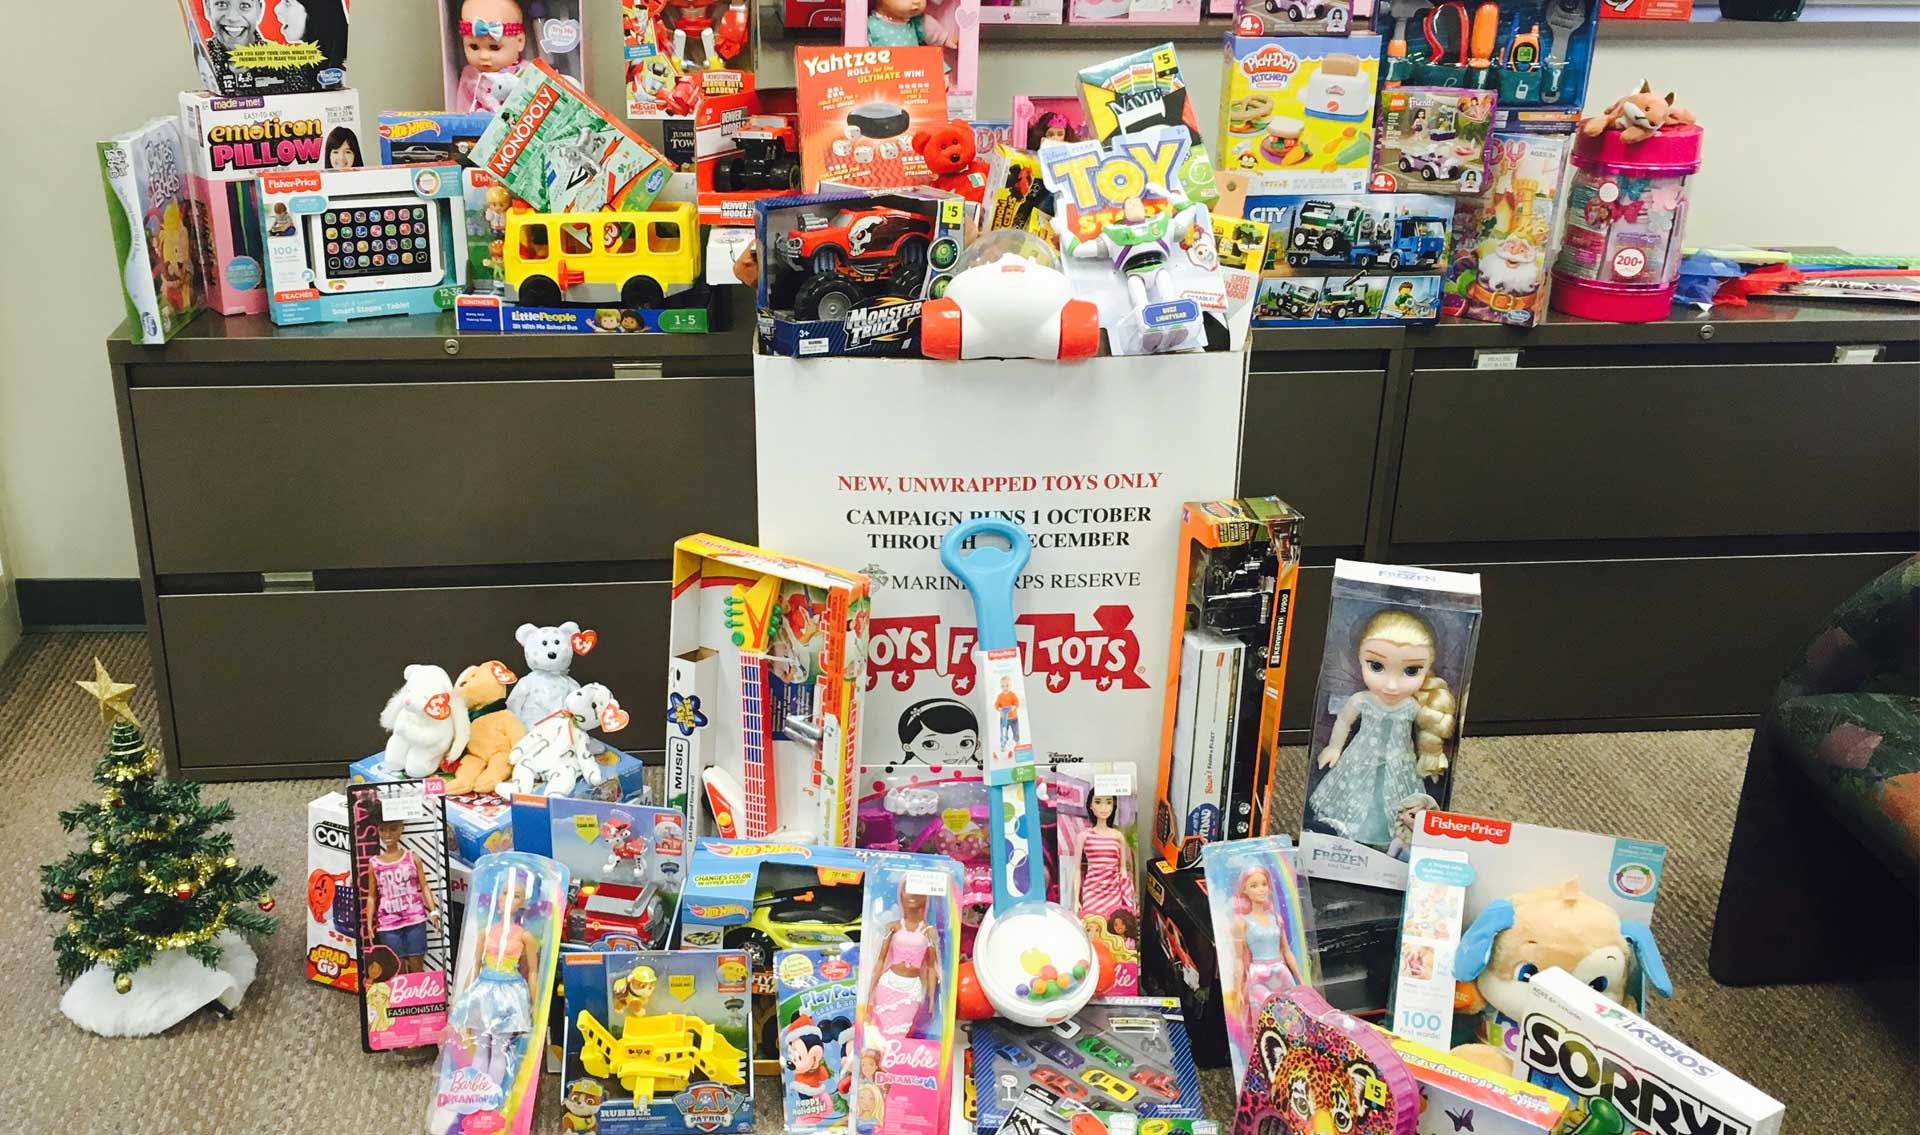 Toys collected for area Children